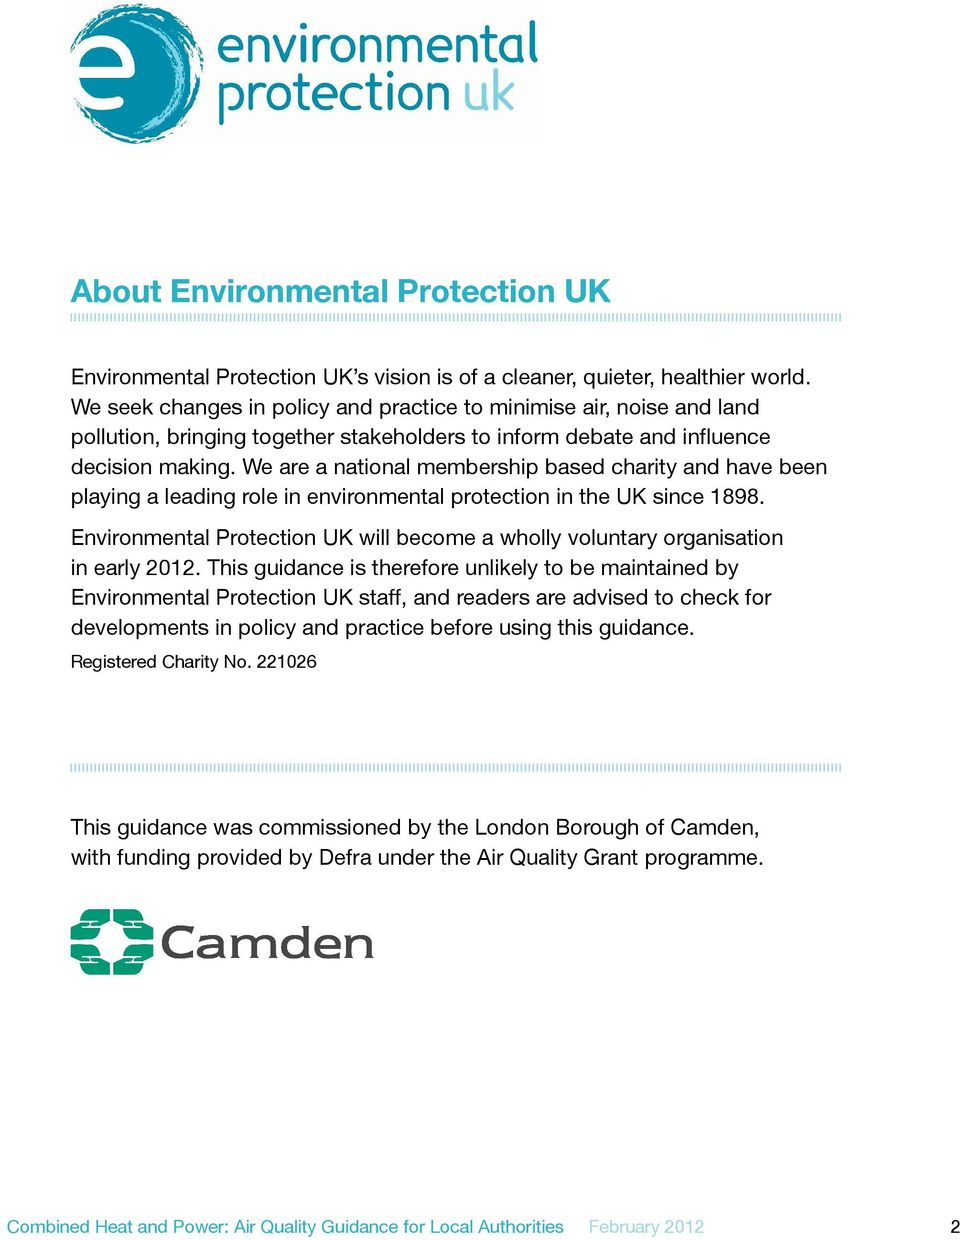 We are a national membership based charity and have been playing a leading role in environmental protection in the UK since 1898.